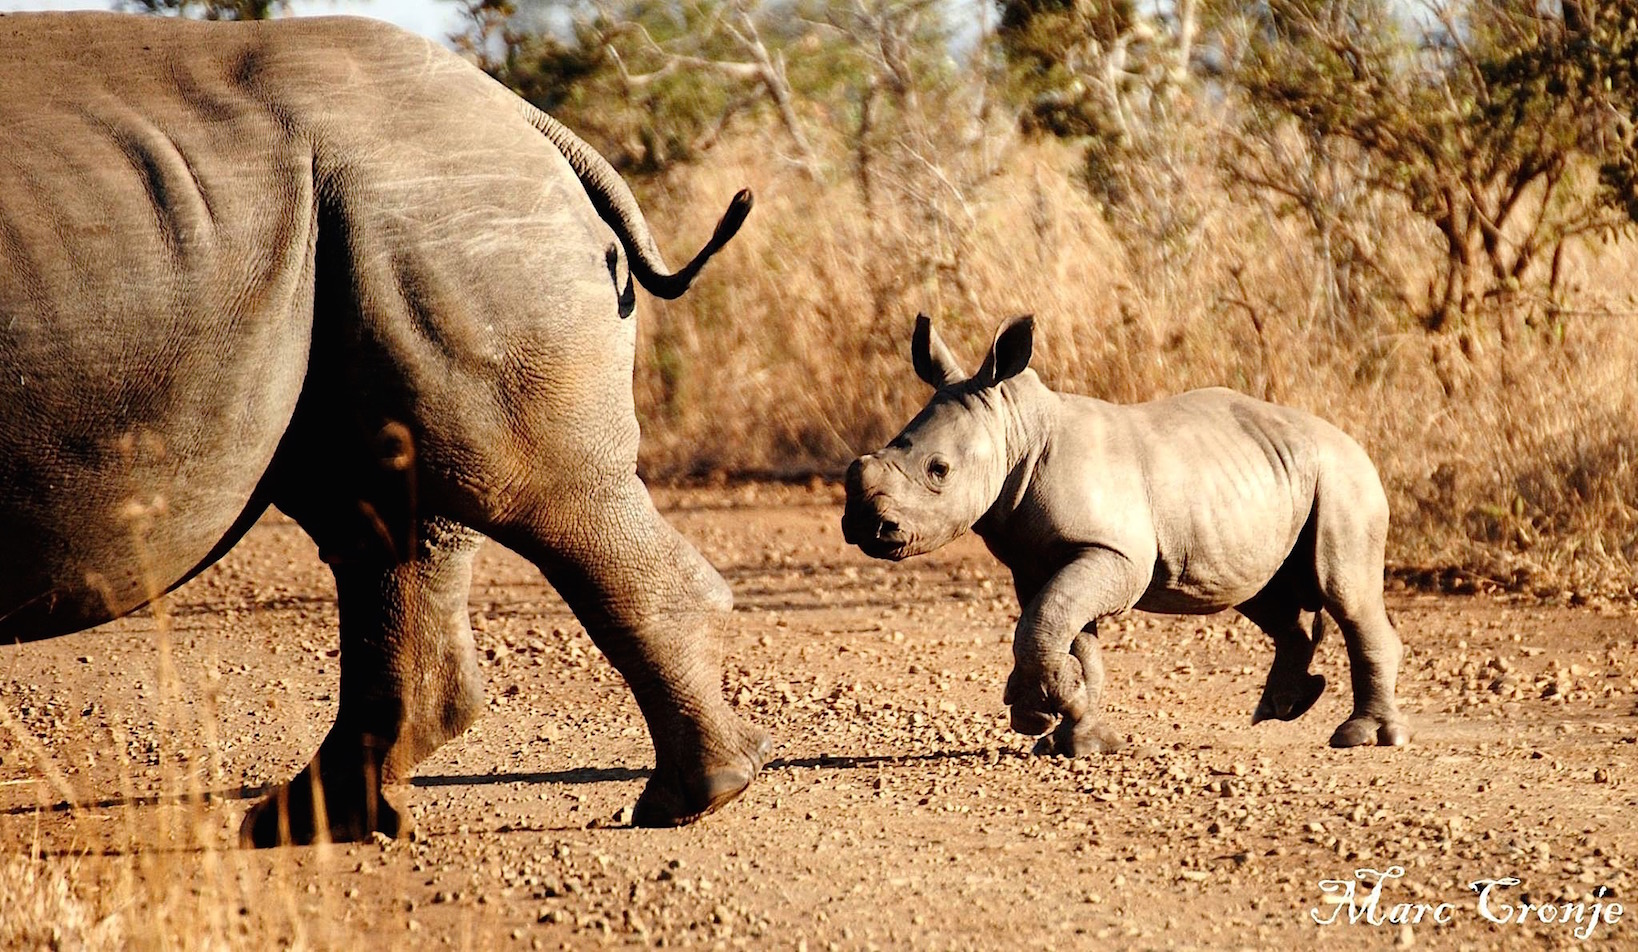 If a calf is following its mother it is a white rhino - black rhino mothers push calves to the front. Photo: Marc Cronje, Independent Field Guide